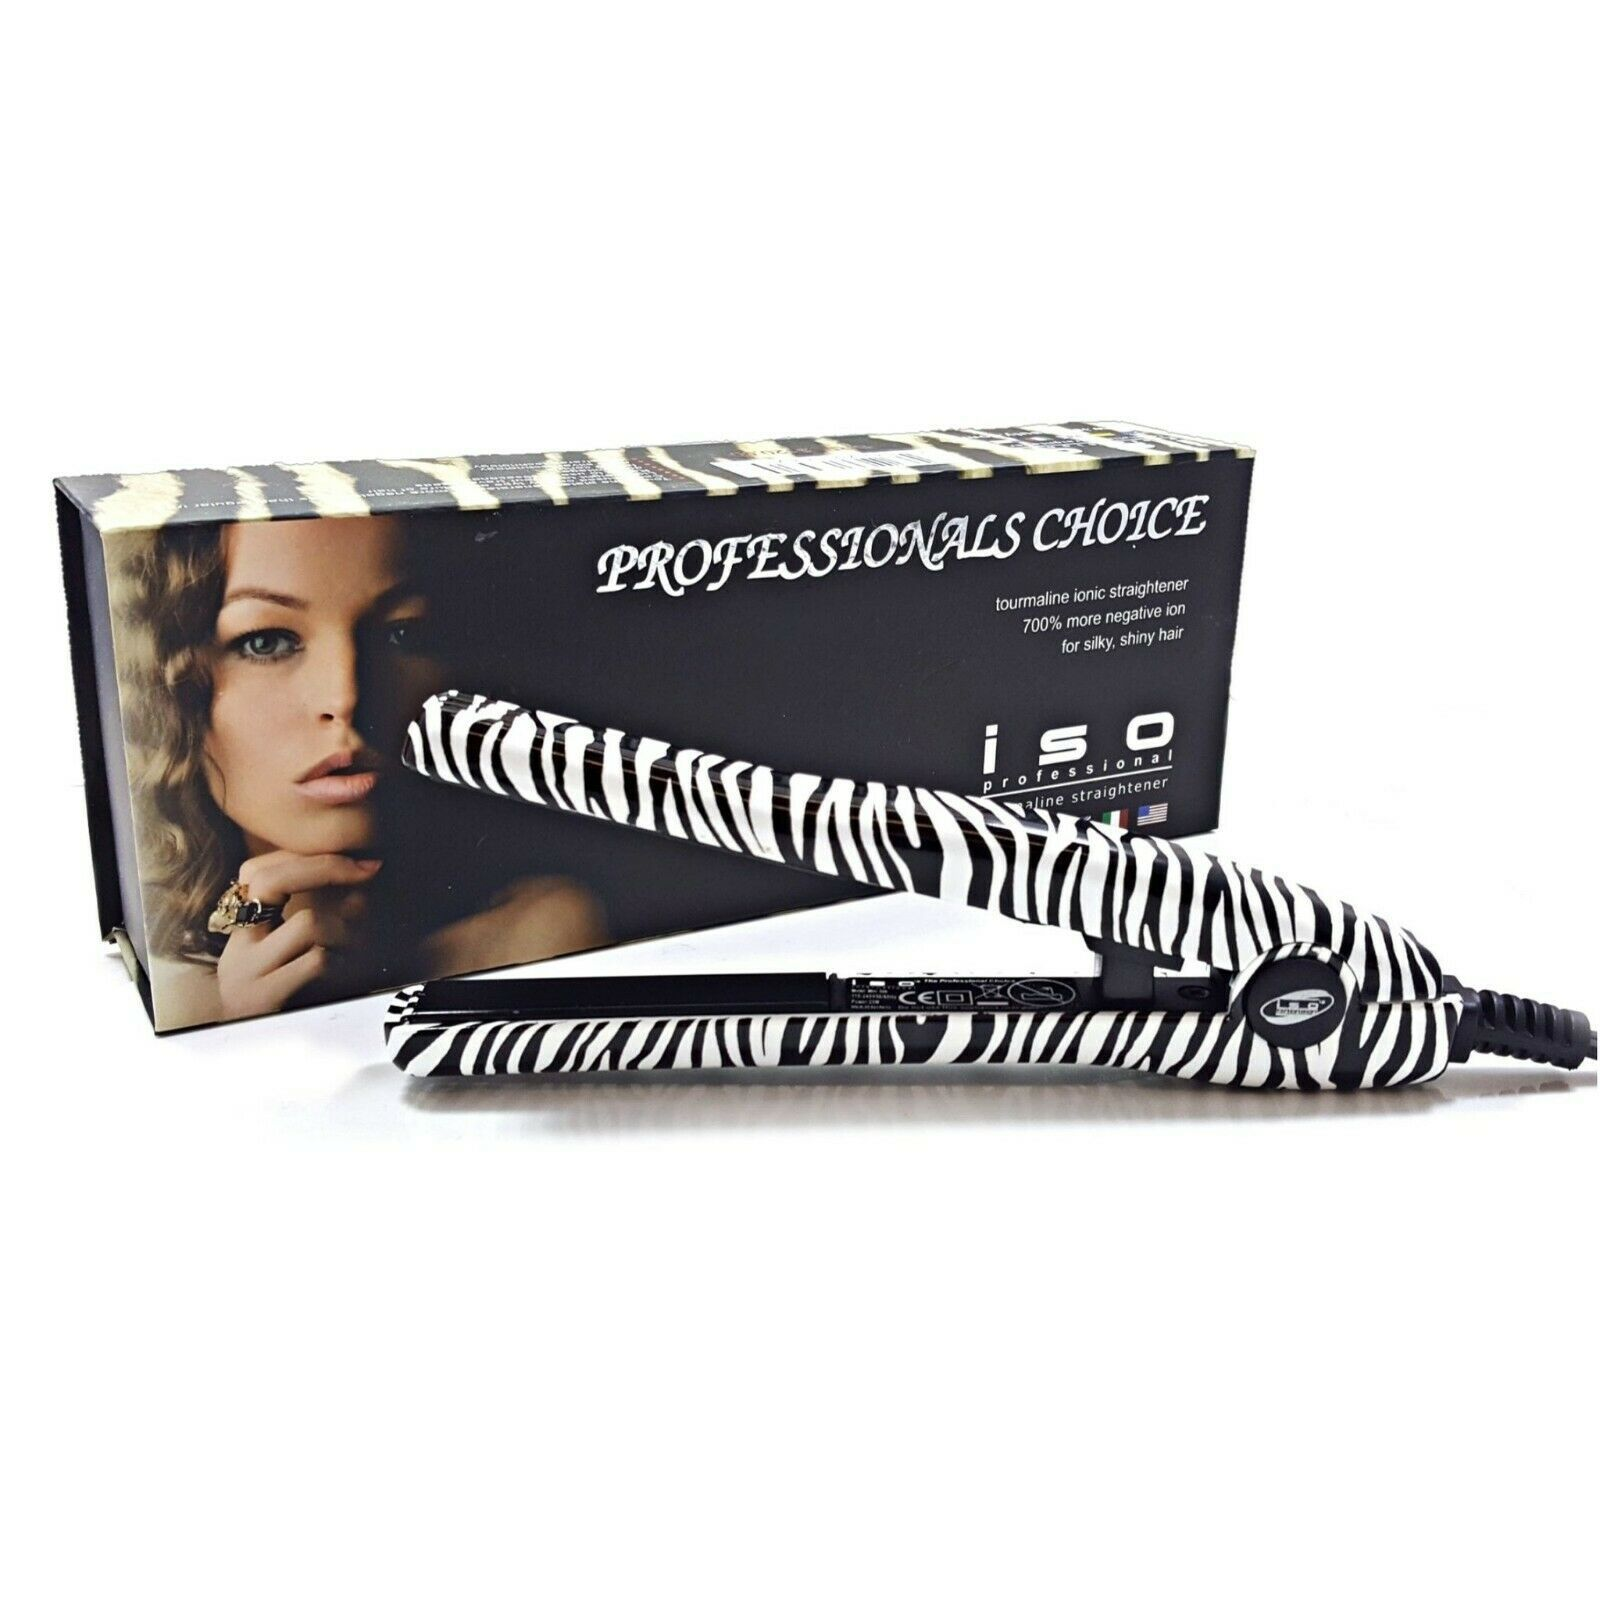 "Primary image for ISO Beauty Travel 0.5"" Mini Silk Tiger or Zebra Mini Iron Hair Straightener"